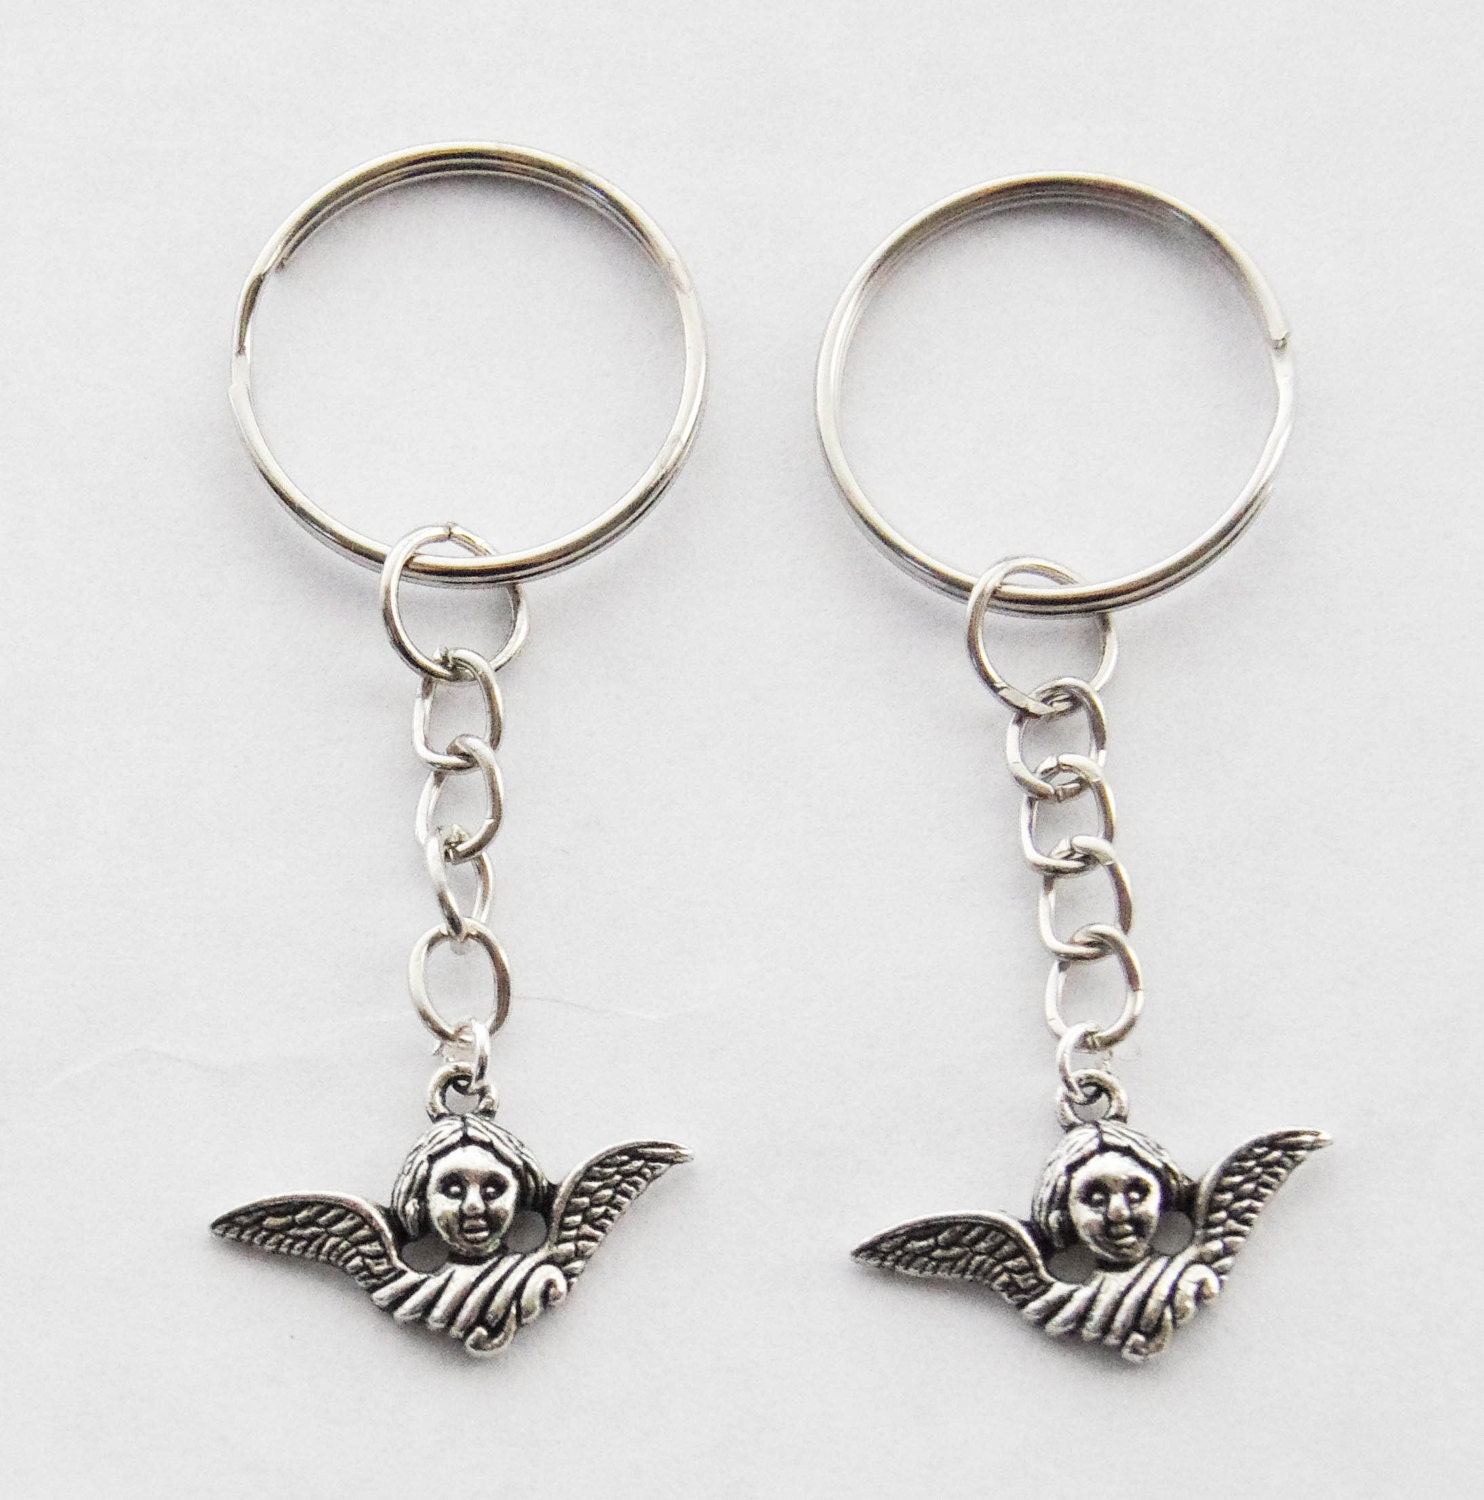 2 Angel Keychains 2 Keychain Set Sister Gifts Memorial Keychain